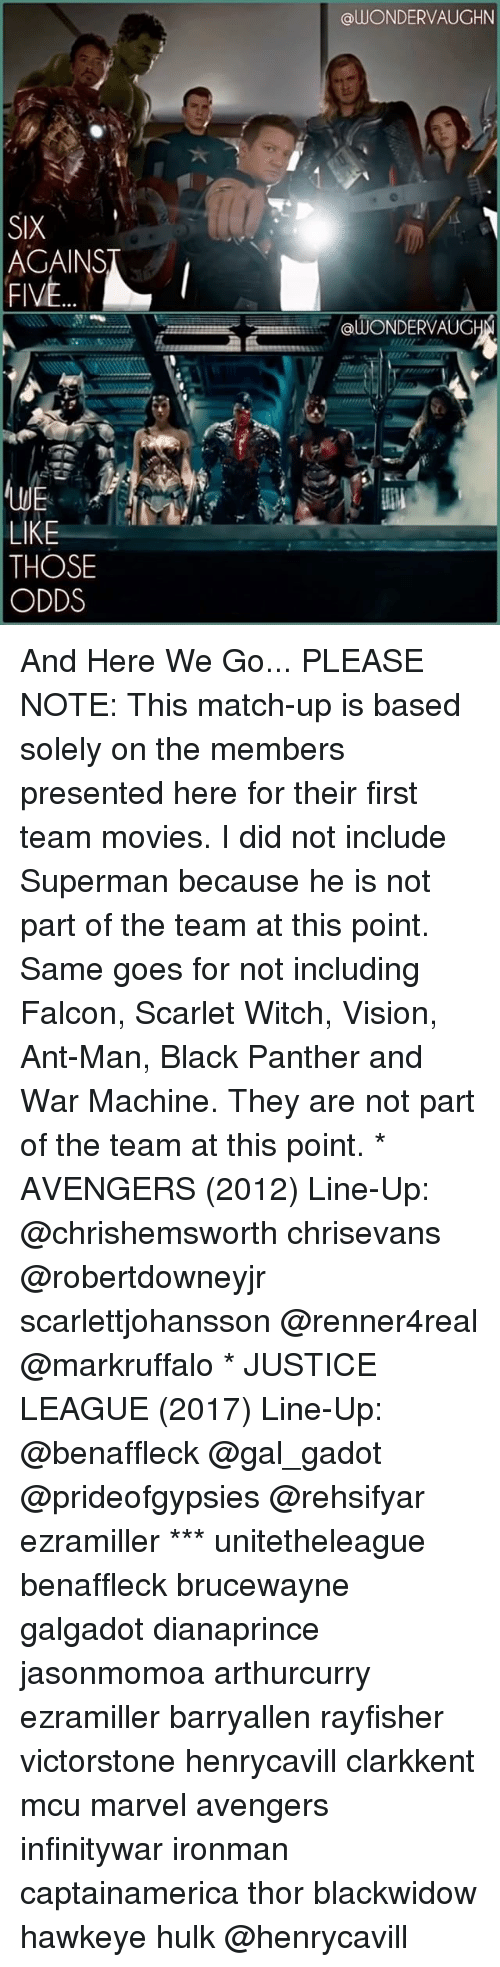 And Here We Go: SIX  FIVE  LIKE  THOSE  ODDS  alUONDERVAUGHN  @WONDER VAUG And Here We Go... PLEASE NOTE: This match-up is based solely on the members presented here for their first team movies. I did not include Superman because he is not part of the team at this point. Same goes for not including Falcon, Scarlet Witch, Vision, Ant-Man, Black Panther and War Machine. They are not part of the team at this point. * AVENGERS (2012) Line-Up: @chrishemsworth chrisevans @robertdowneyjr scarlettjohansson @renner4real @markruffalo * JUSTICE LEAGUE (2017) Line-Up: @benaffleck @gal_gadot @prideofgypsies @rehsifyar ezramiller *** unitetheleague benaffleck brucewayne galgadot dianaprince jasonmomoa arthurcurry ezramiller barryallen rayfisher victorstone henrycavill clarkkent mcu marvel avengers infinitywar ironman captainamerica thor blackwidow hawkeye hulk @henrycavill